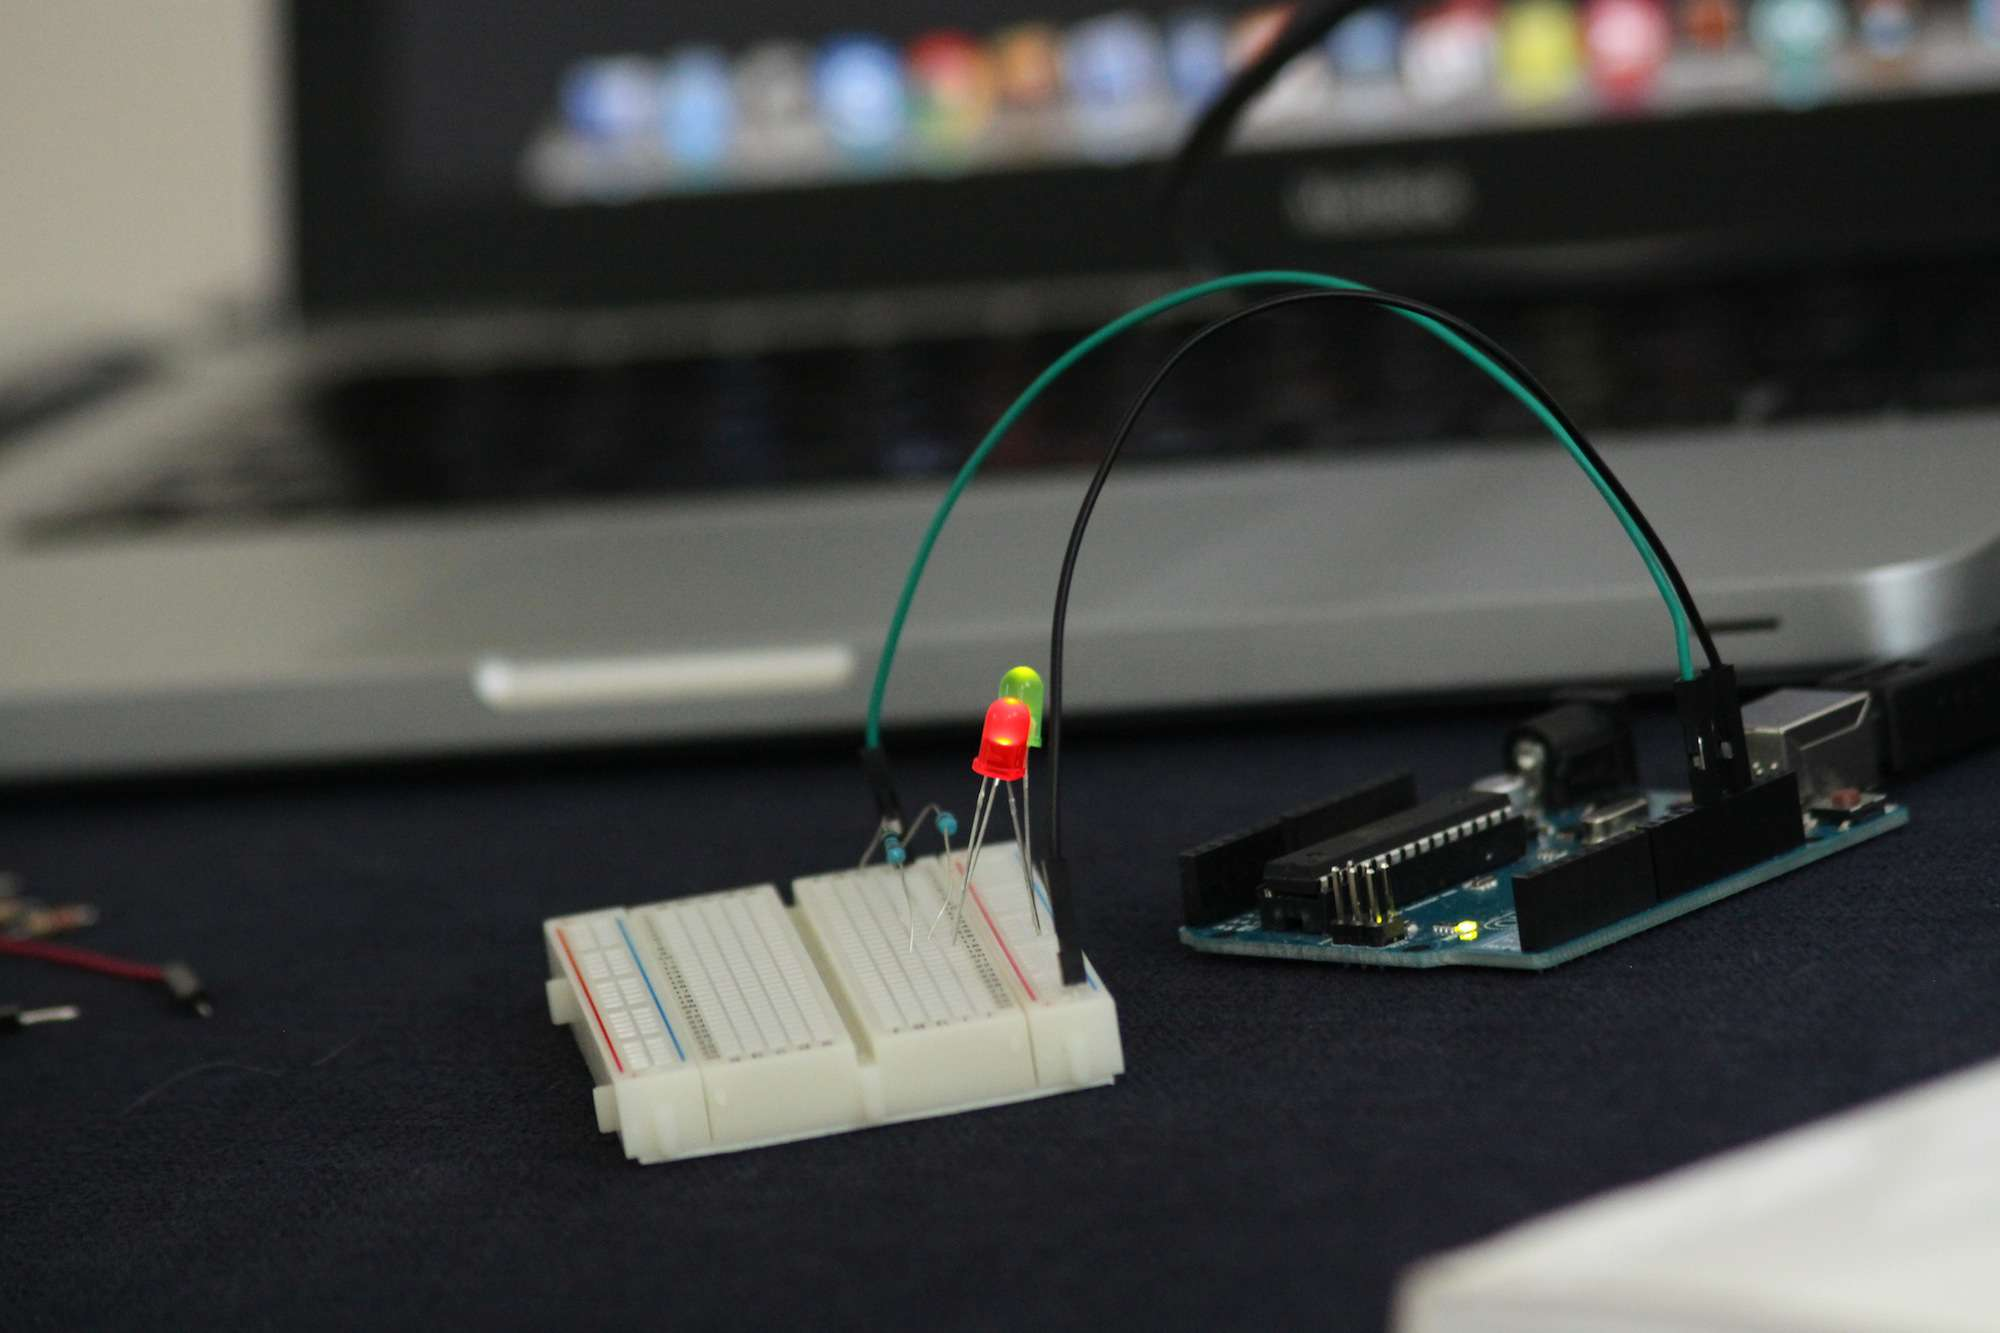 Close-Up Of Arduino On Table